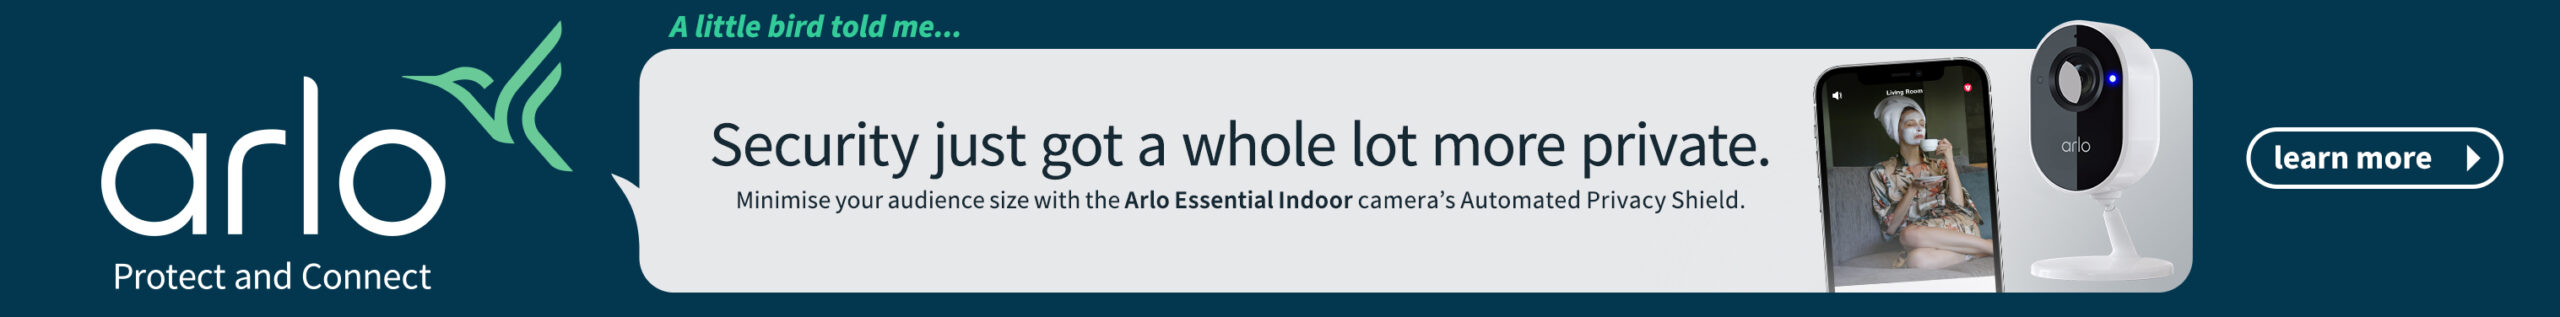 ARL0355 Arlo ESS Indoor Generic Banner 728x90 V4 scaled Apple Inspires The Library Of The Future